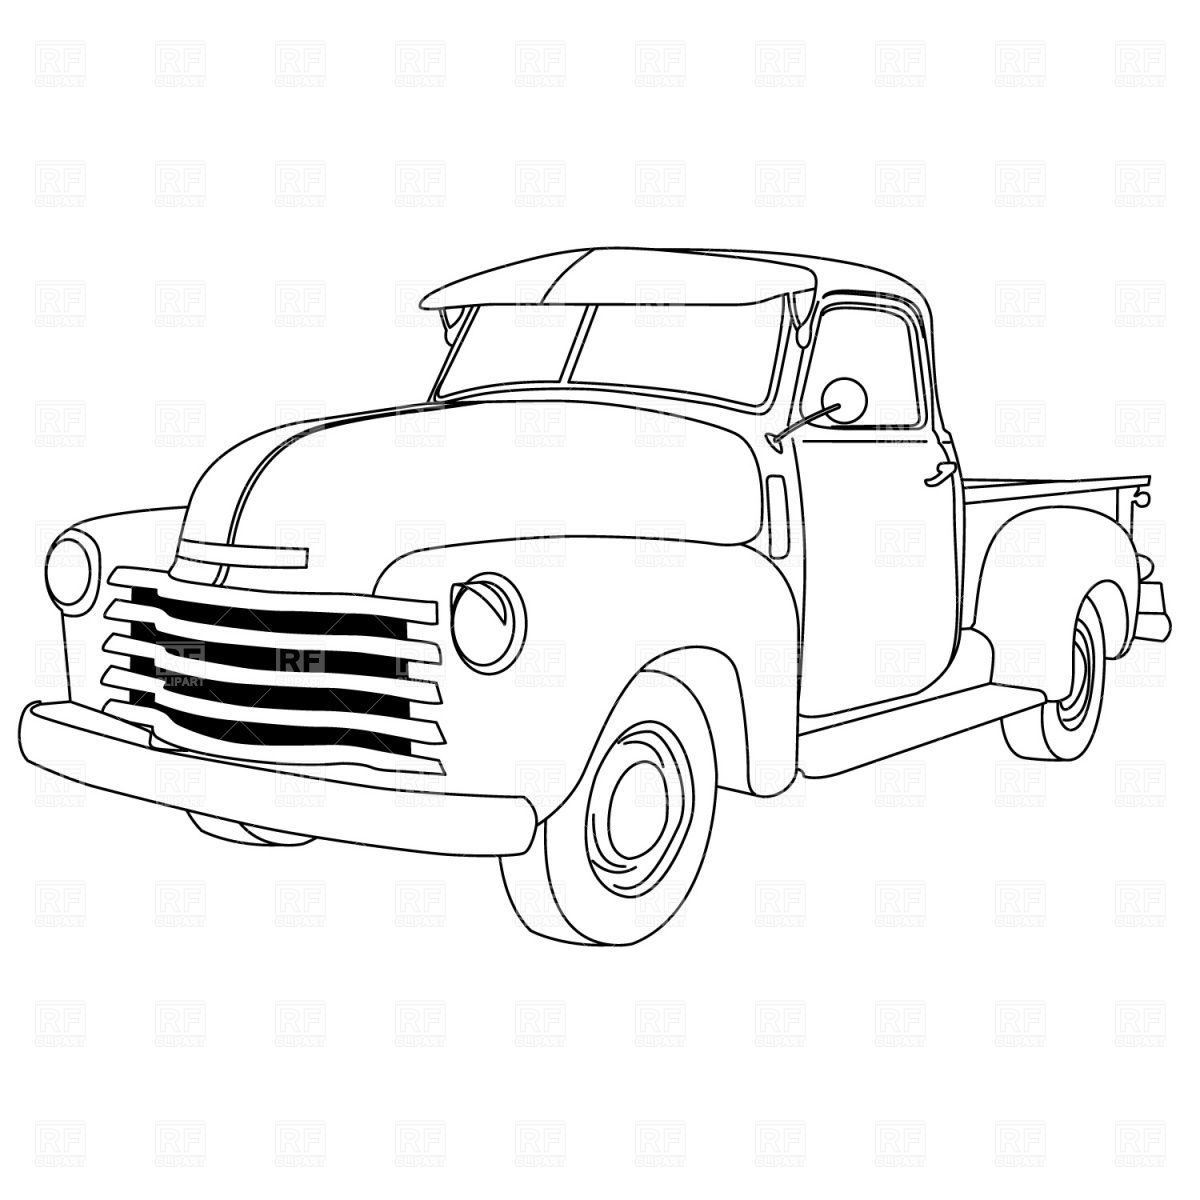 old truck coloring pages Classic Car Vector Art Old american pick up truck | Retro any Hot  old truck coloring pages